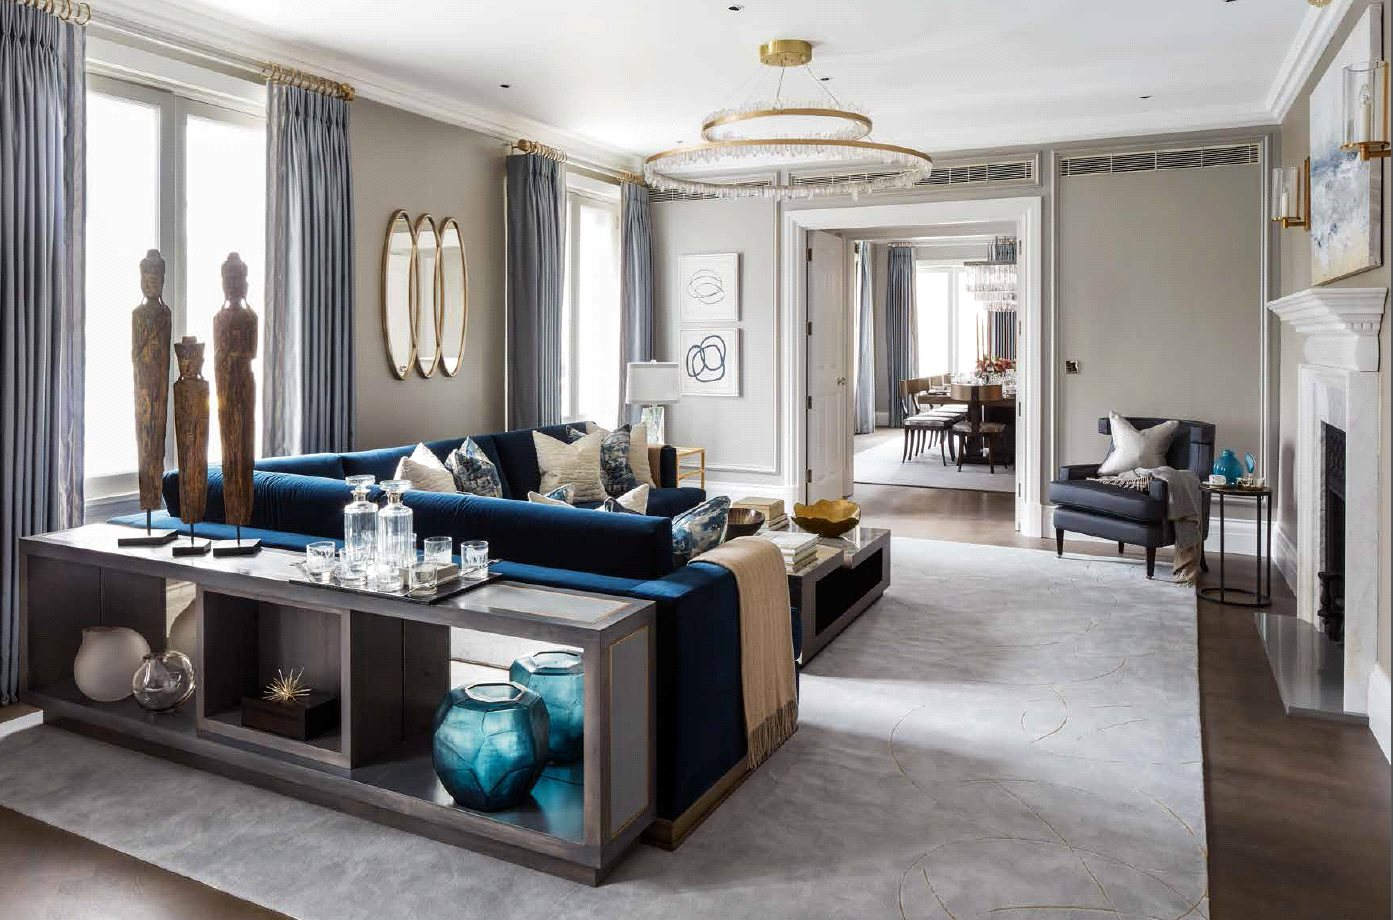 Apartments / Flats for Sale at The Clarence, 88 St. James's Street, London, SW1A London, London And Vicinity England